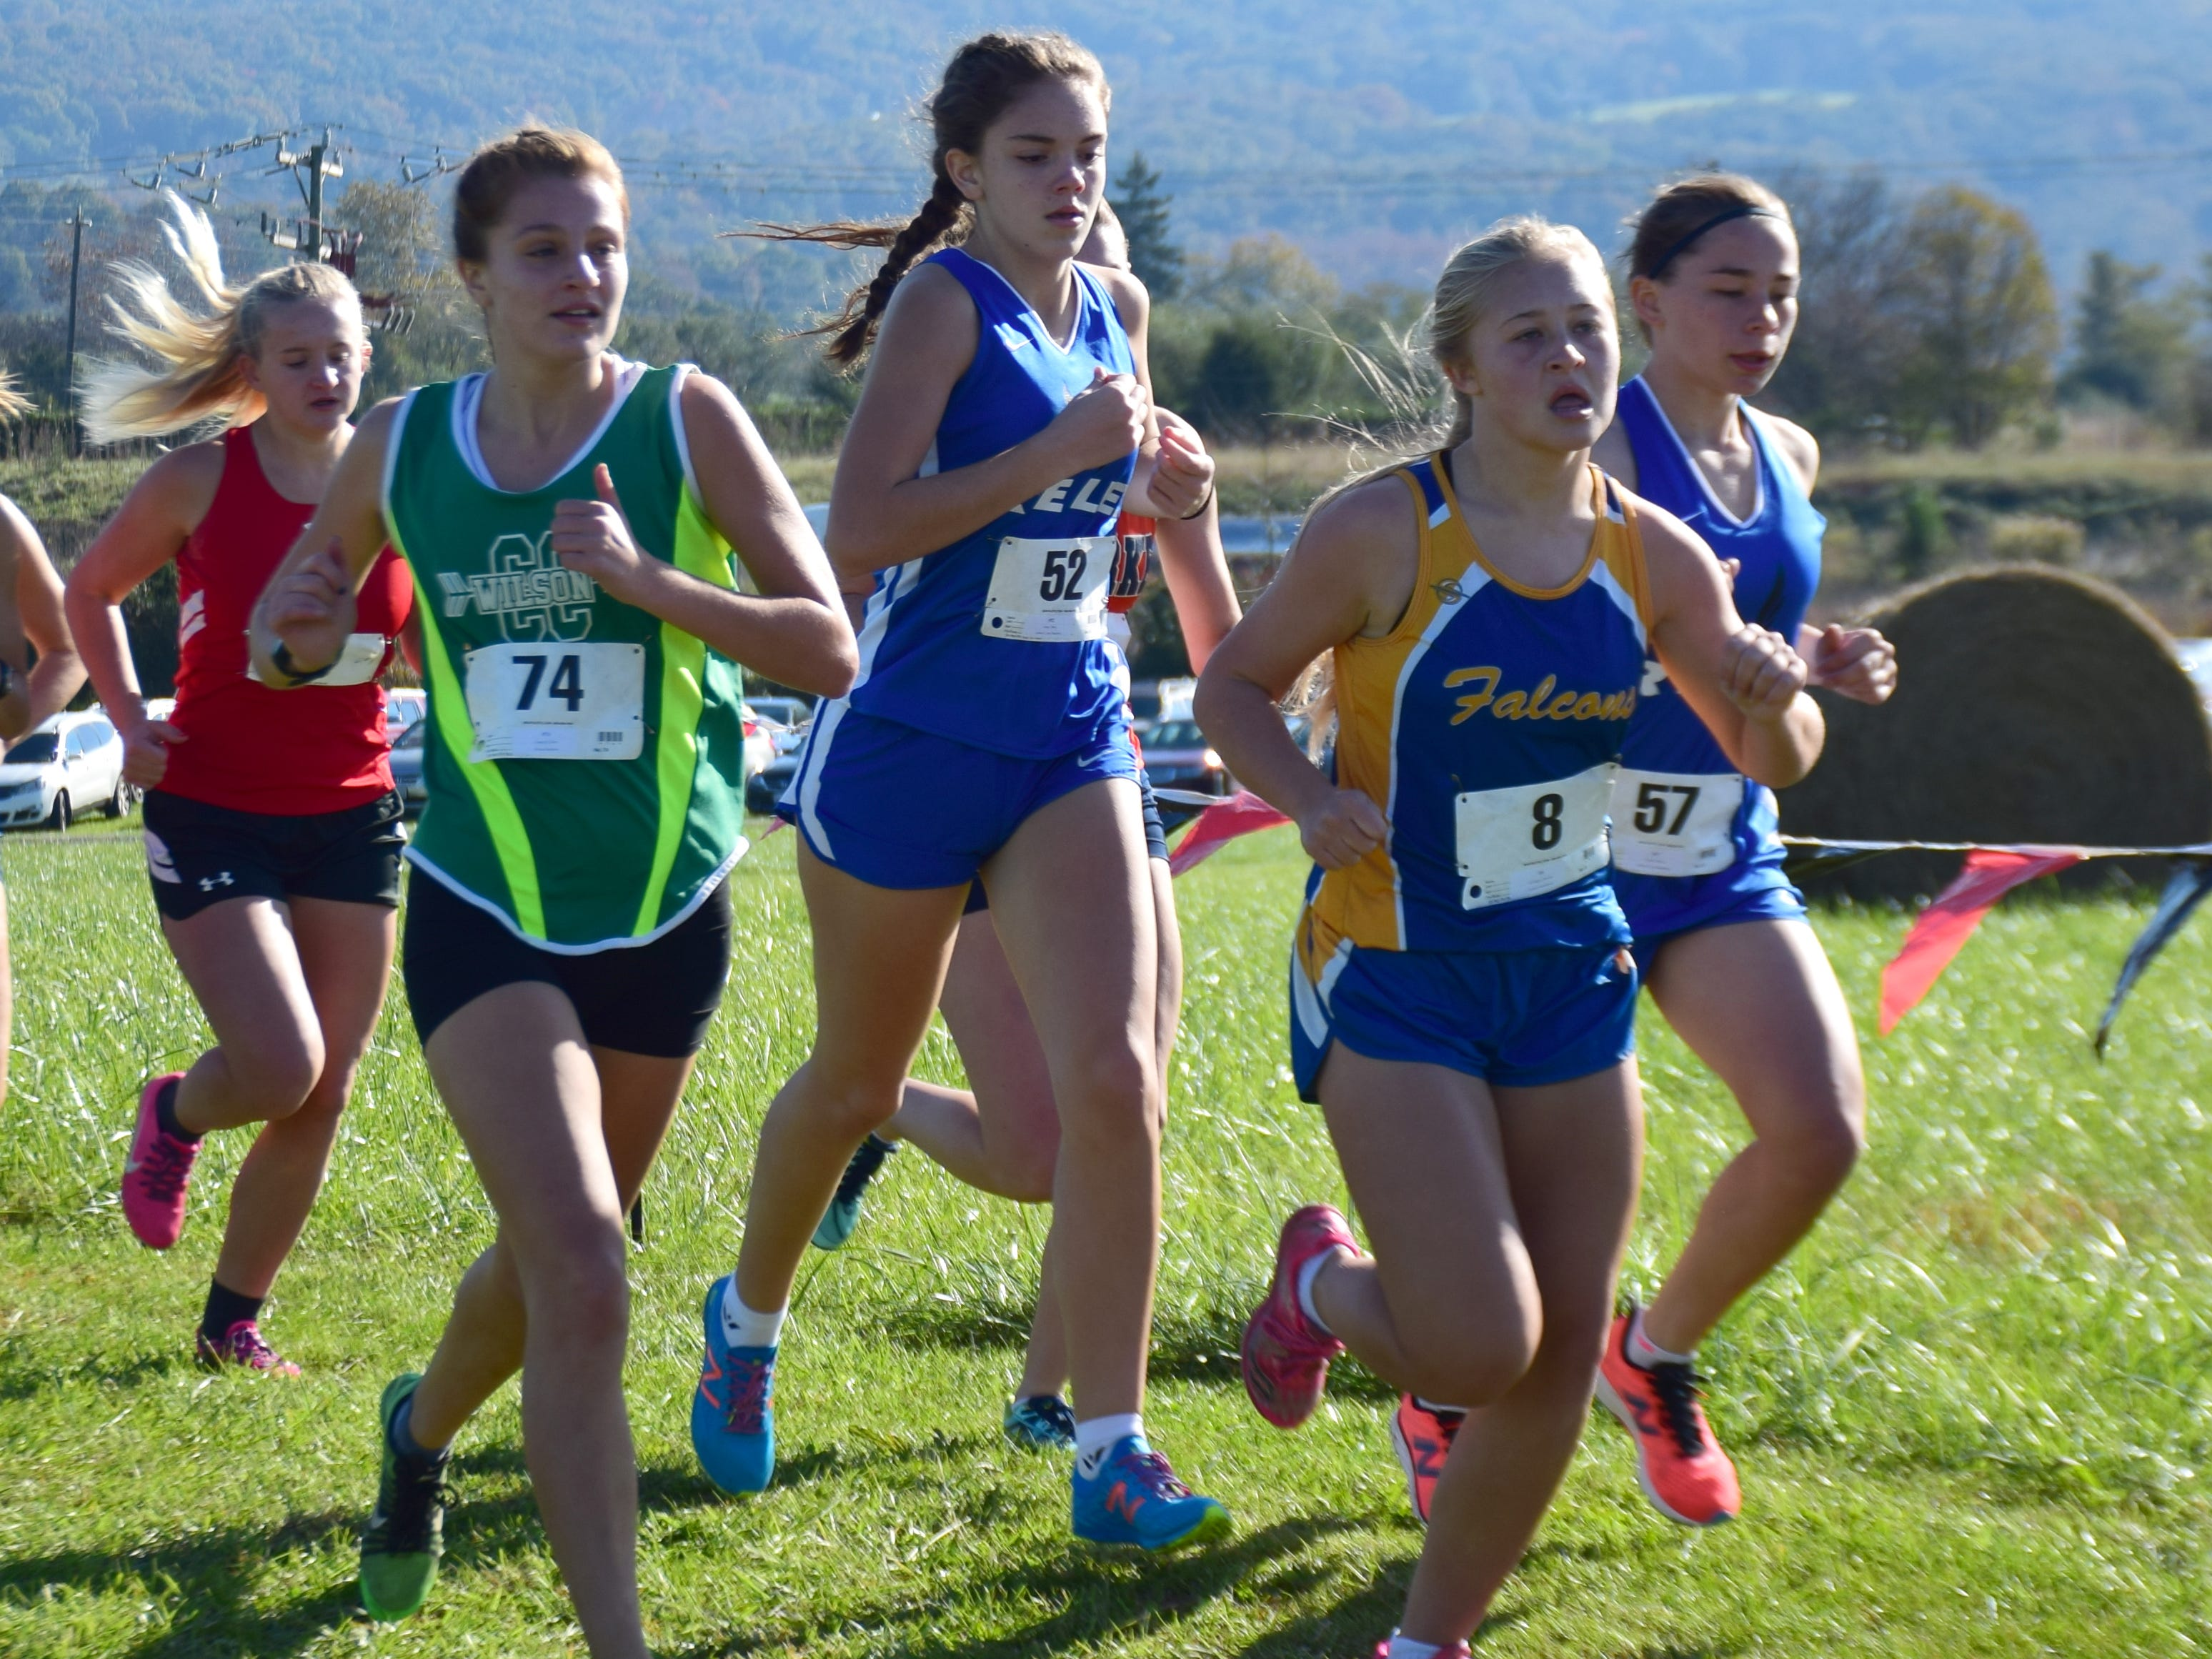 Wilson Memorial's Chloe Surratt, left, and Robert E. Lee's Mary Jones, center, and Olivia Yurish, right, compete in the girls race at the VHSL Class 2, Region B Cross Country Championships on Tuesday, Oct. 30, 2018, at New Market Battlefield Park in New Market, Va.